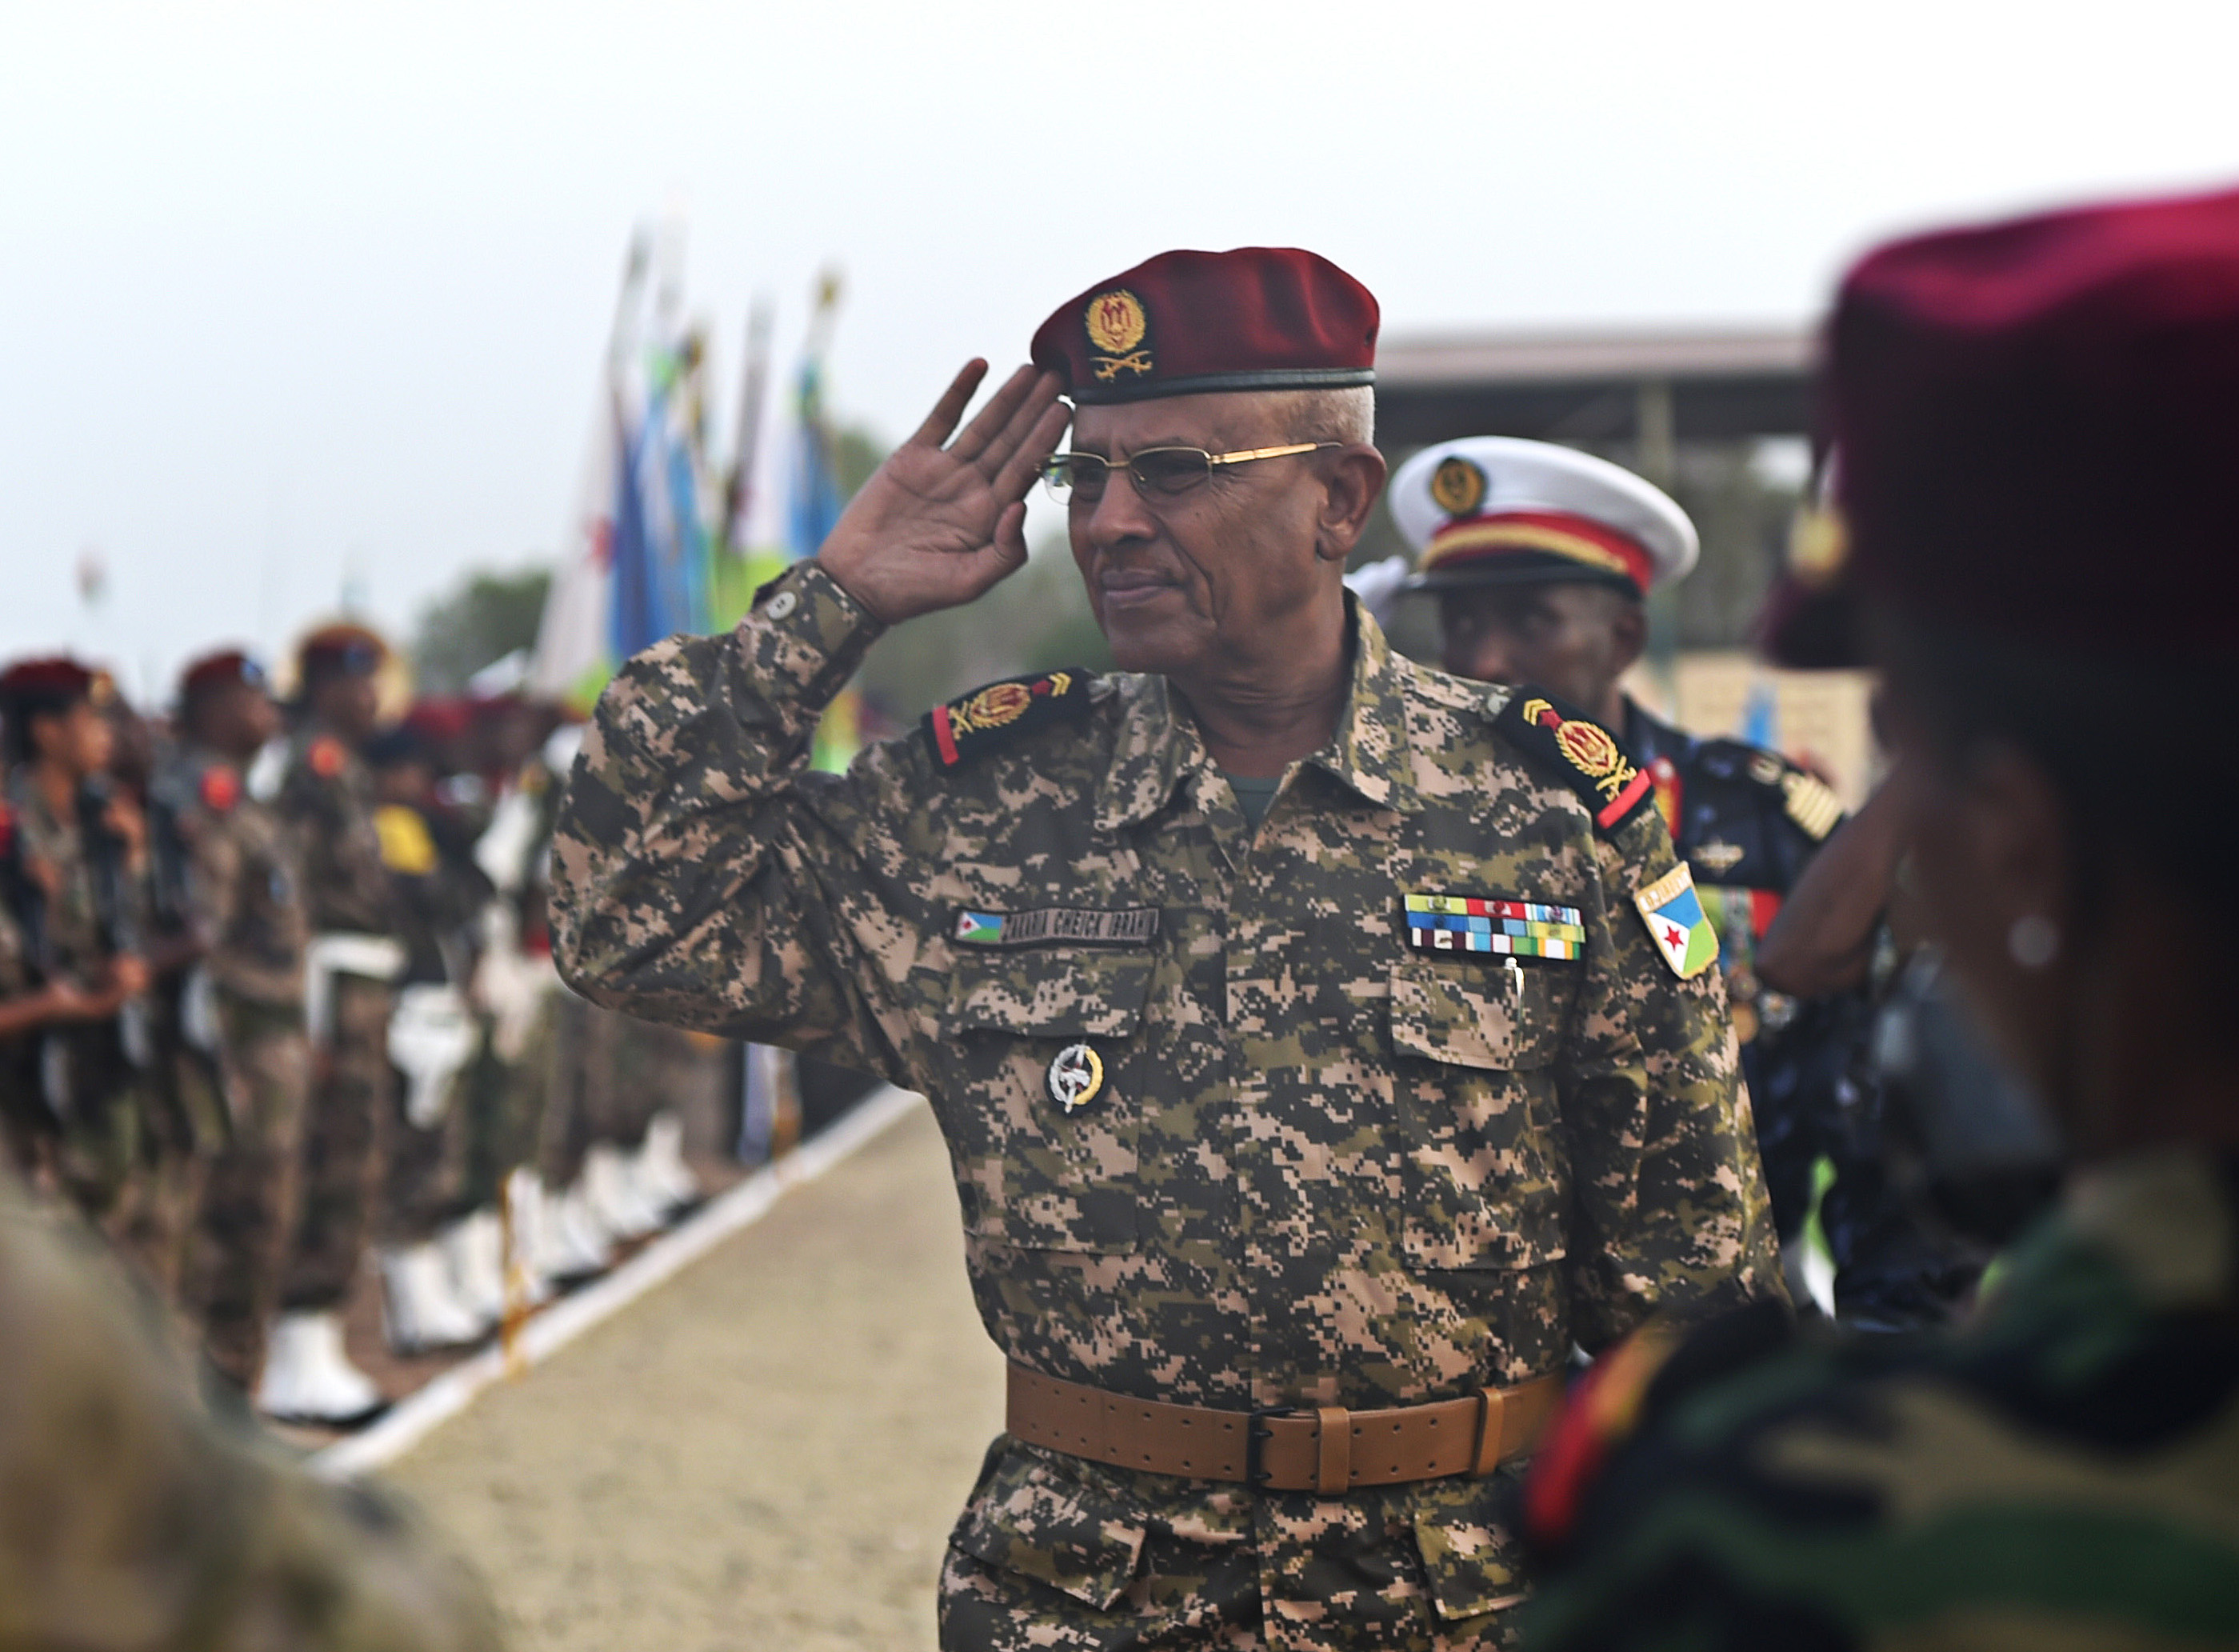 Gen. Zakaria Cheikh Ibrahim, Djiboutian Armed Forces (FAD) chief of defense, salutes his troops during the FAD's 38th anniversary celebration at Camp Cheik Osman, Djibouti, June 6, 2015.  Zakaria gained command in 2013 and is responsible for 6500 Djiboutian military personnel. (U.S. Air Force photo by Senior Airman Nesha Humes)